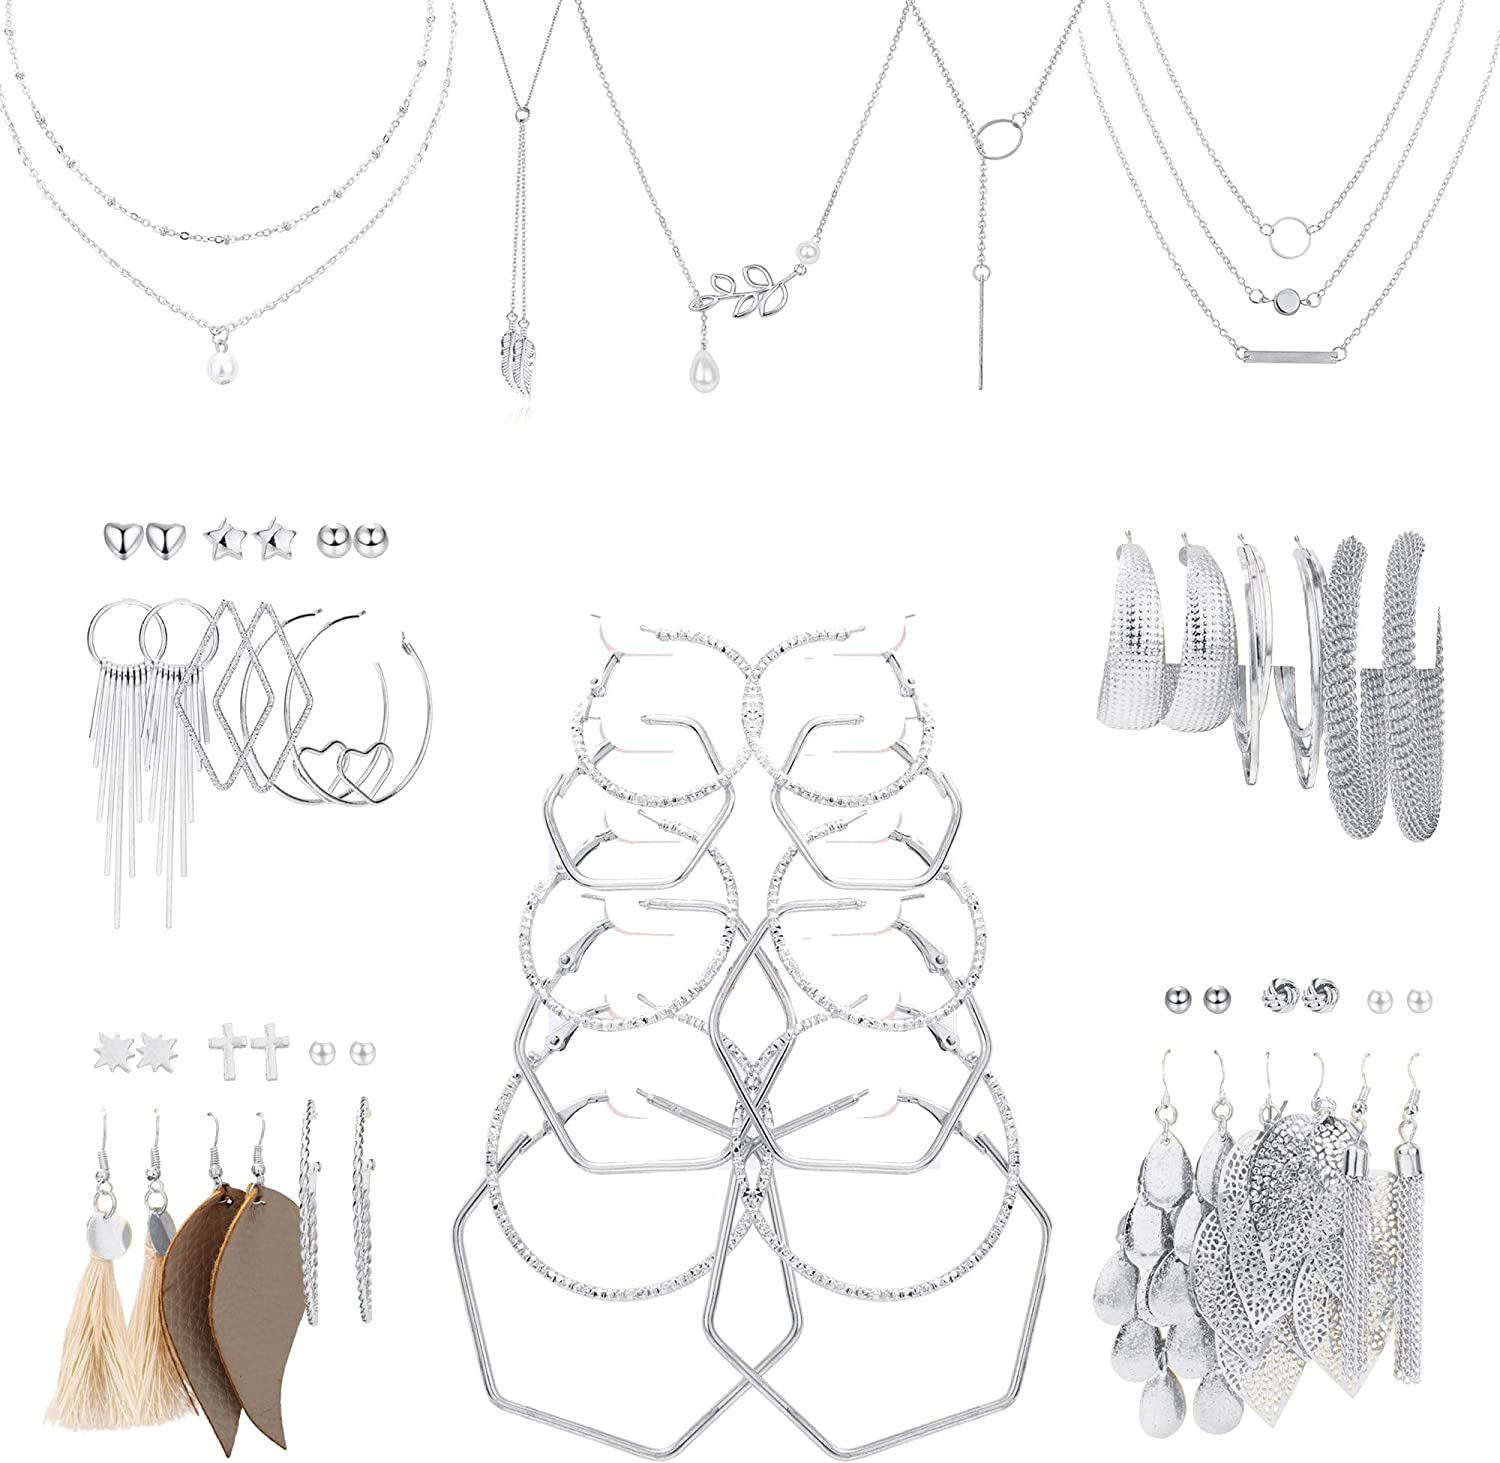 JOERICA Necklace and Earring Jewelry Set with 27 Pairs Ball Dangle Hoop Stud Earrings and 5 PCS Layered Necklaces for Women Fashion Jewelry and Valentine Birthday Party Gift